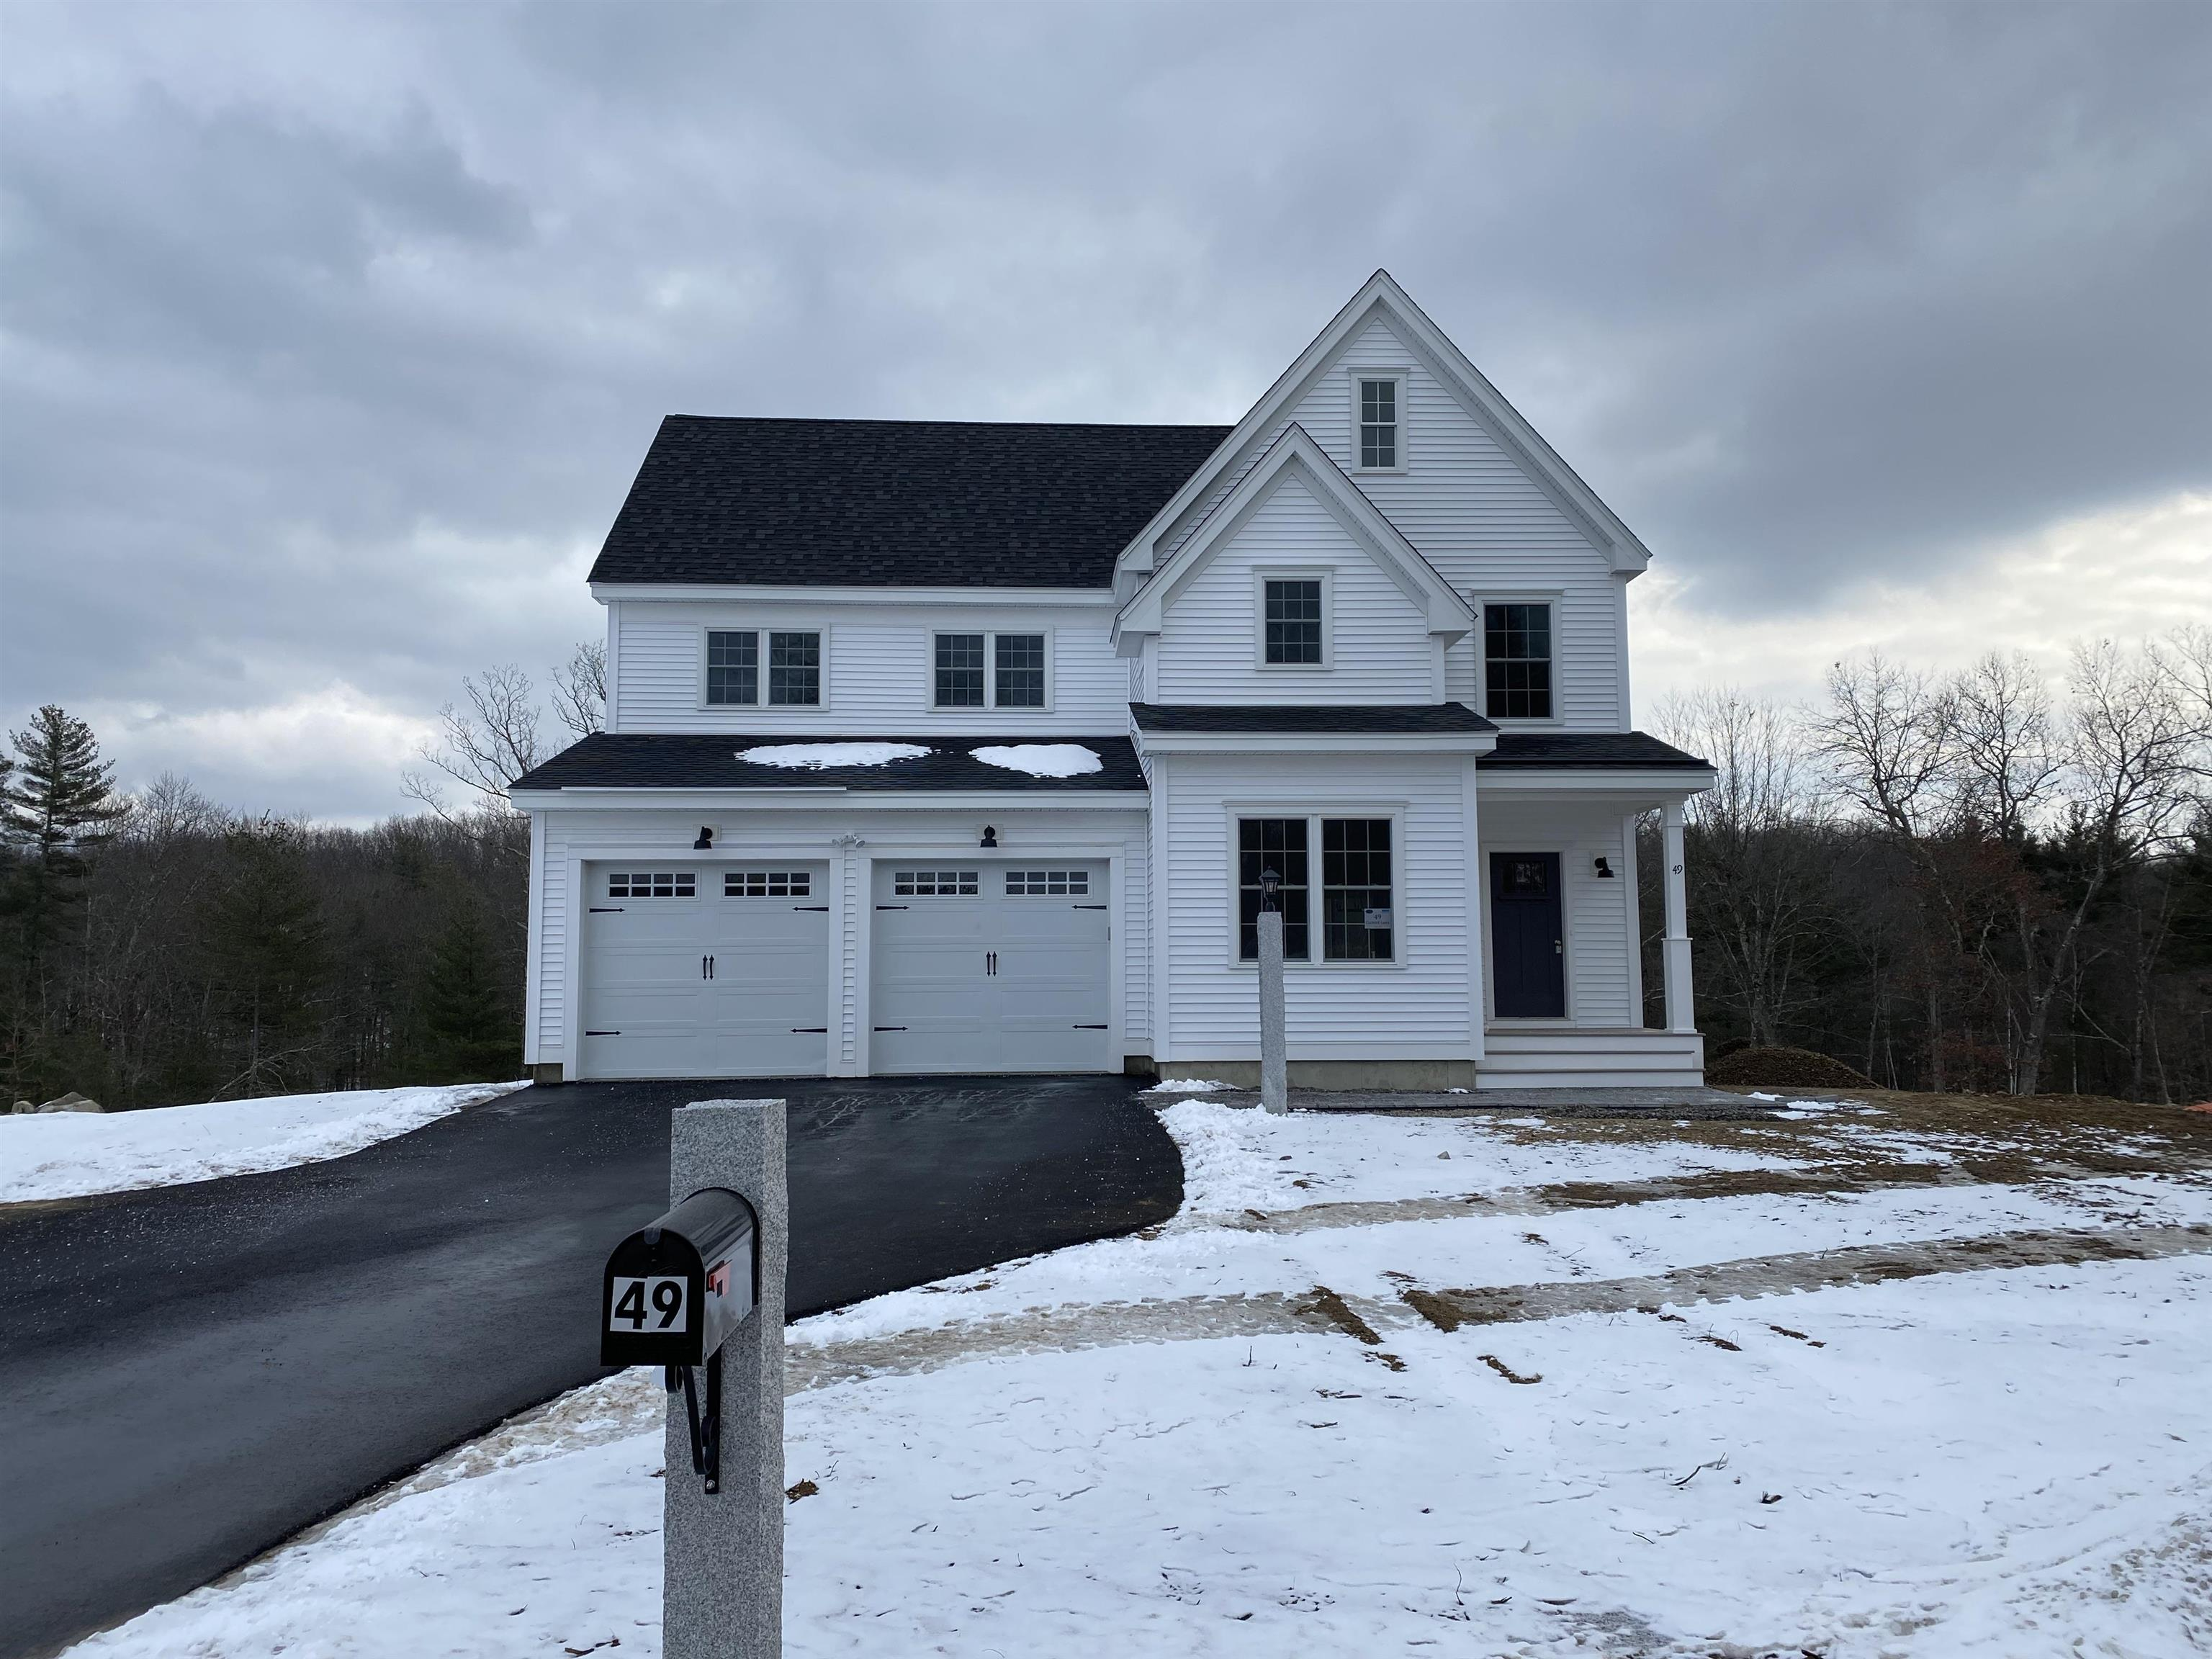 Photo of Lot 103 Lorden Commons Londonderry NH 03053